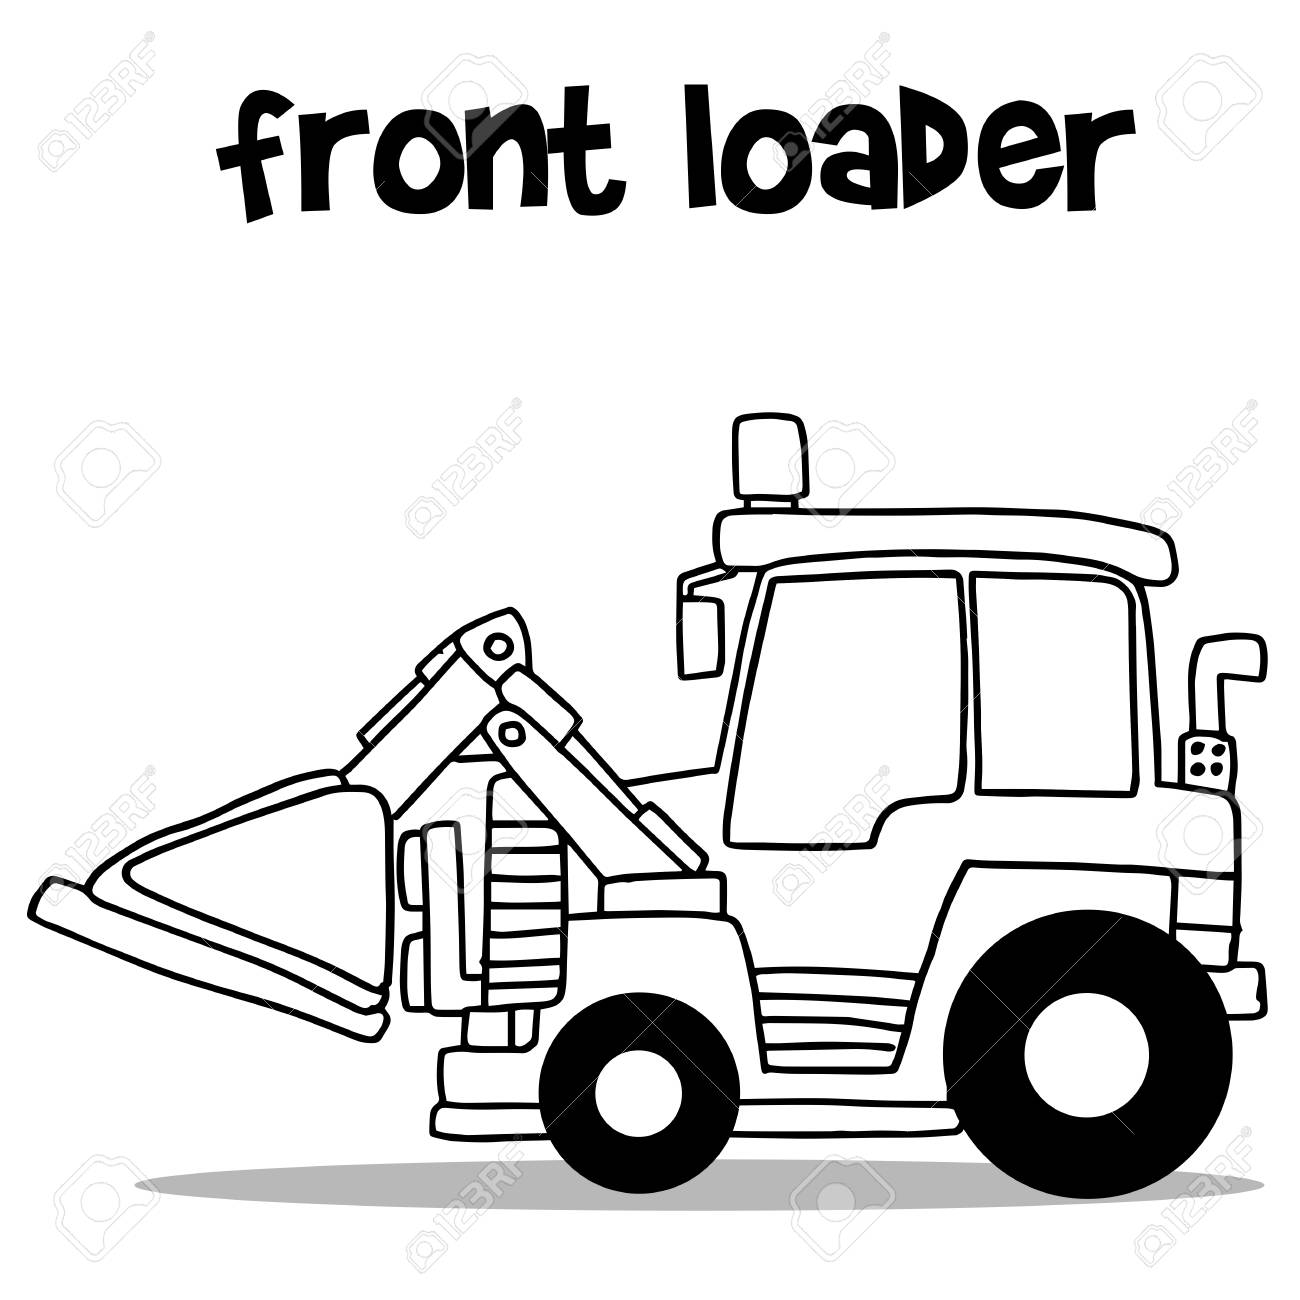 1300x1300 Front Loader With Hand Draw Royalty Free Cliparts, Vectors,